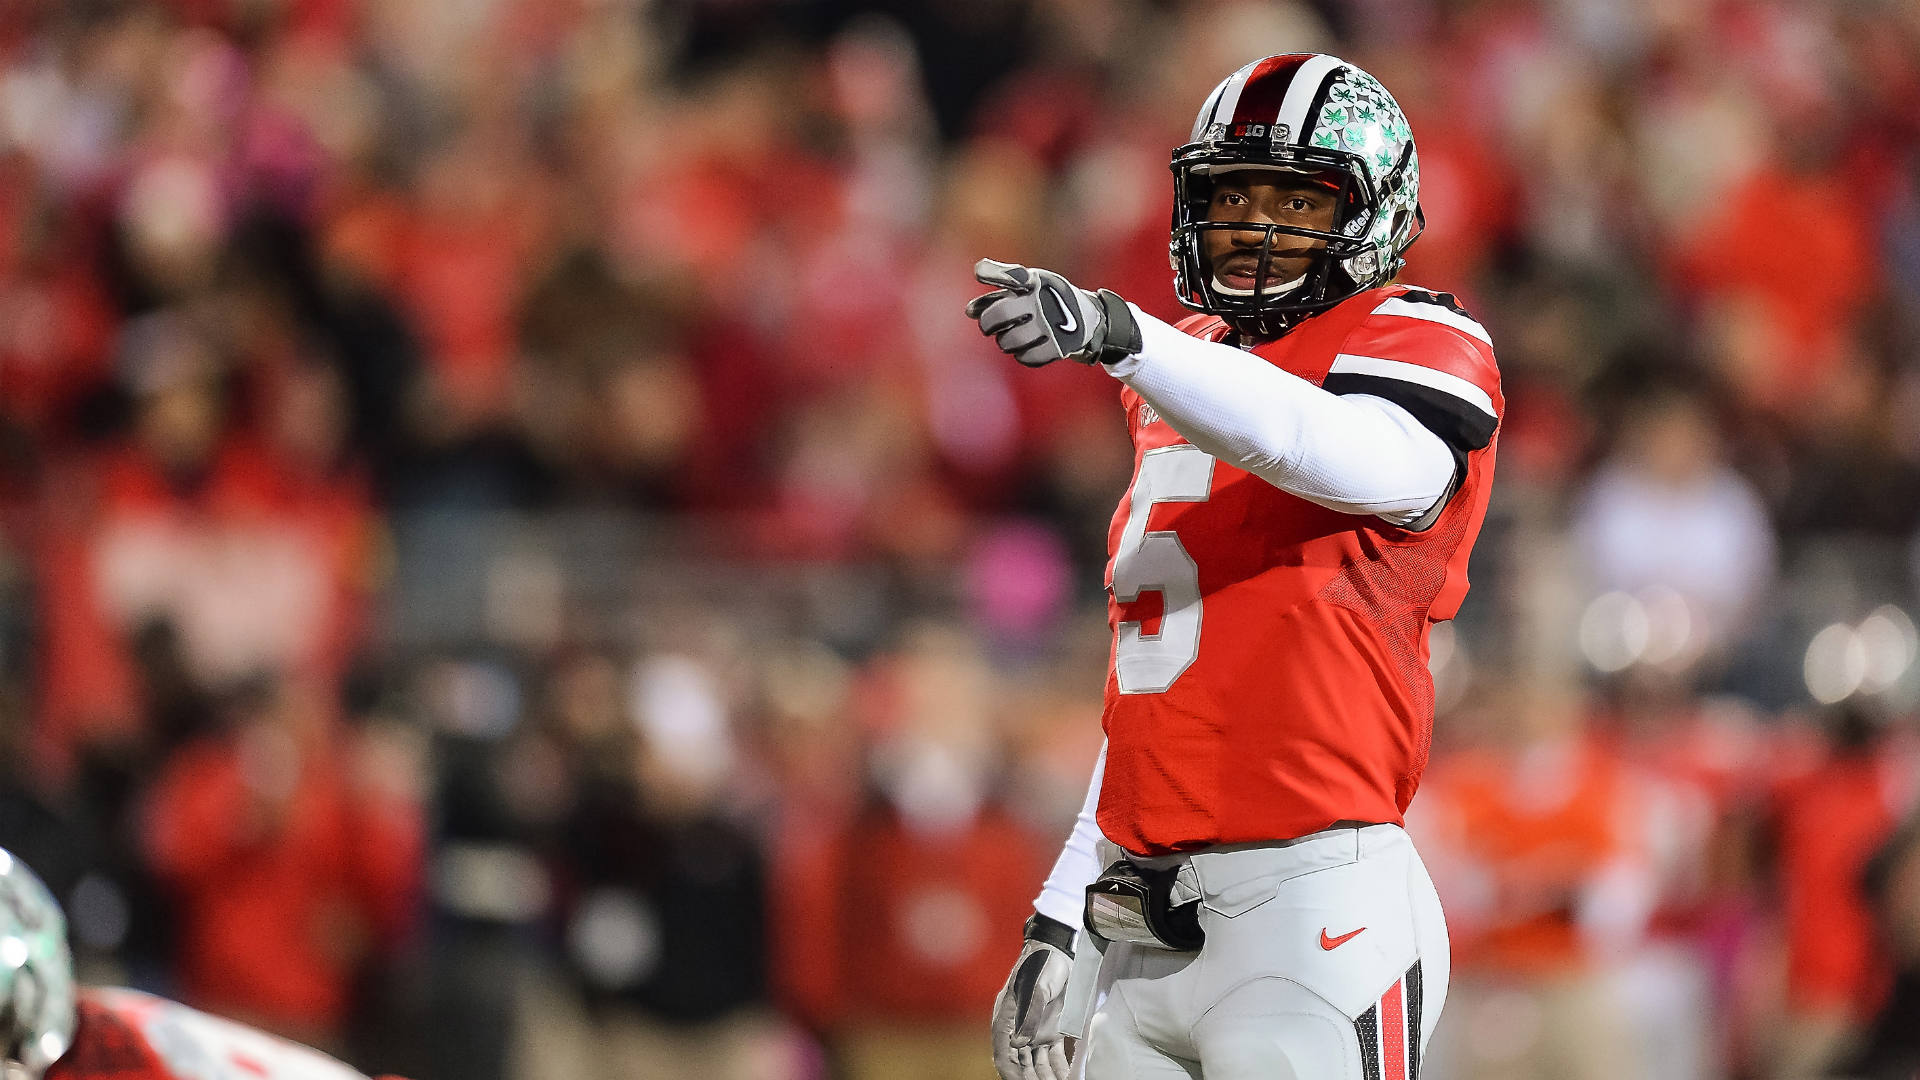 Report: Braxton Miller to 'announce immediate plans' next week